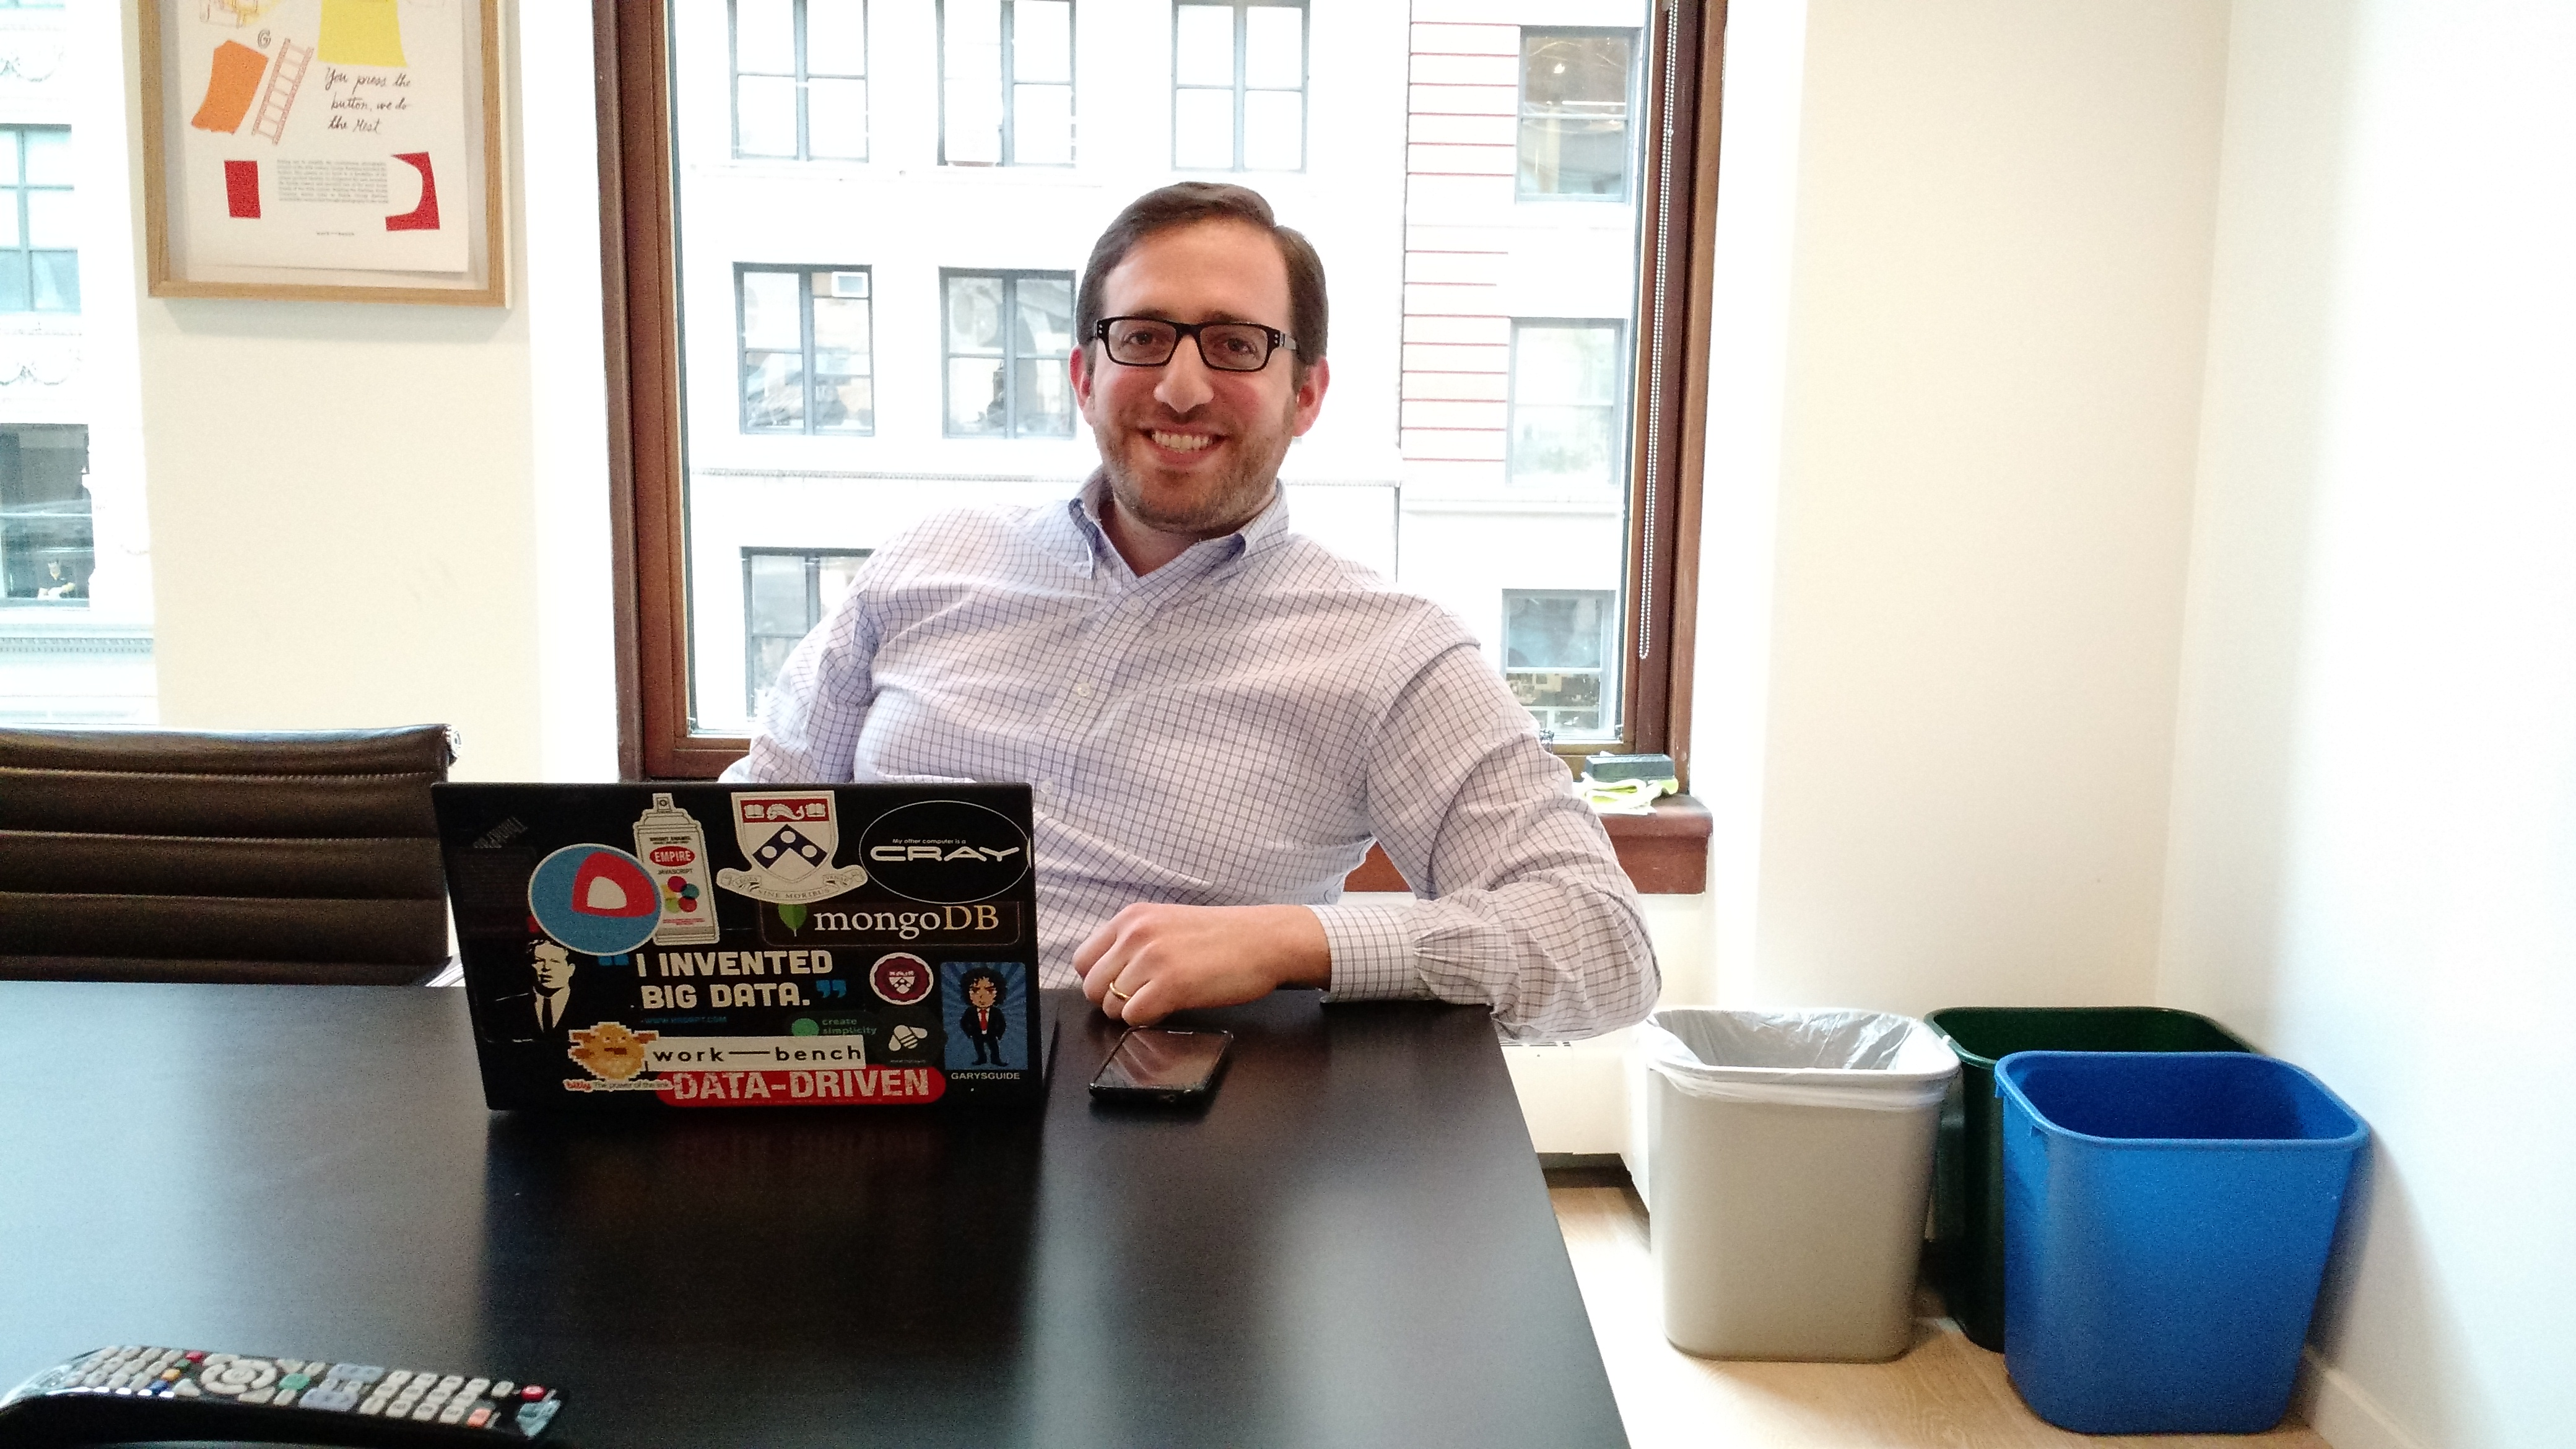 Jon Lehr, a cofounder of Work-Bench and its venture director, at Work-Bench in New York on Dec. 11.